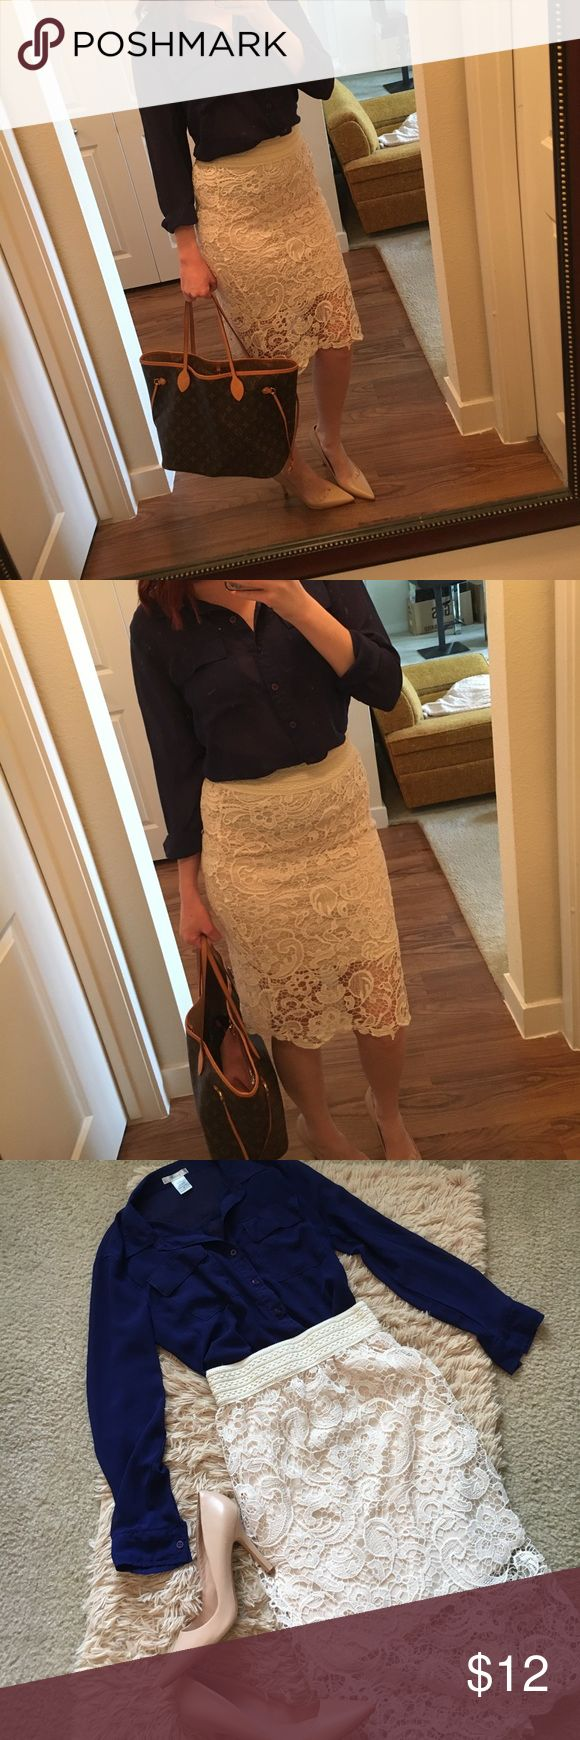 Cream Lace Skirt Cream Lace Skirt size S/M has some stretch. Elastic waist band, very stretchy. Skirt itself has some give. Photos show the length of the sewn in slip & how far it covers. Navy blouse available separately. Smoke free home. No trades please, will consider offers & bundles! N/A Skirts Pencil